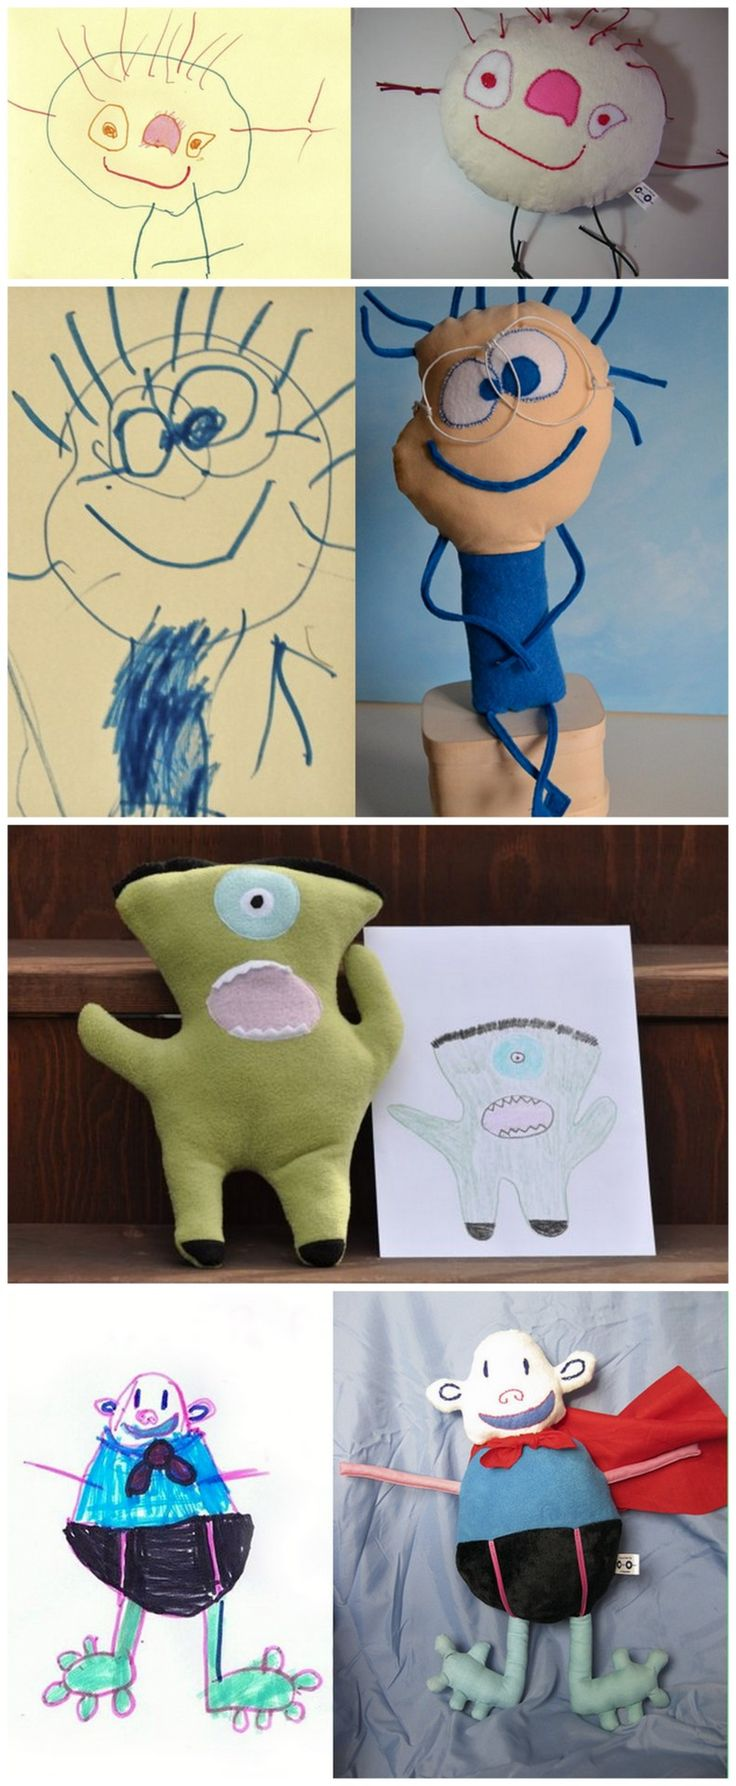 Kids love seeing their drawings come alive